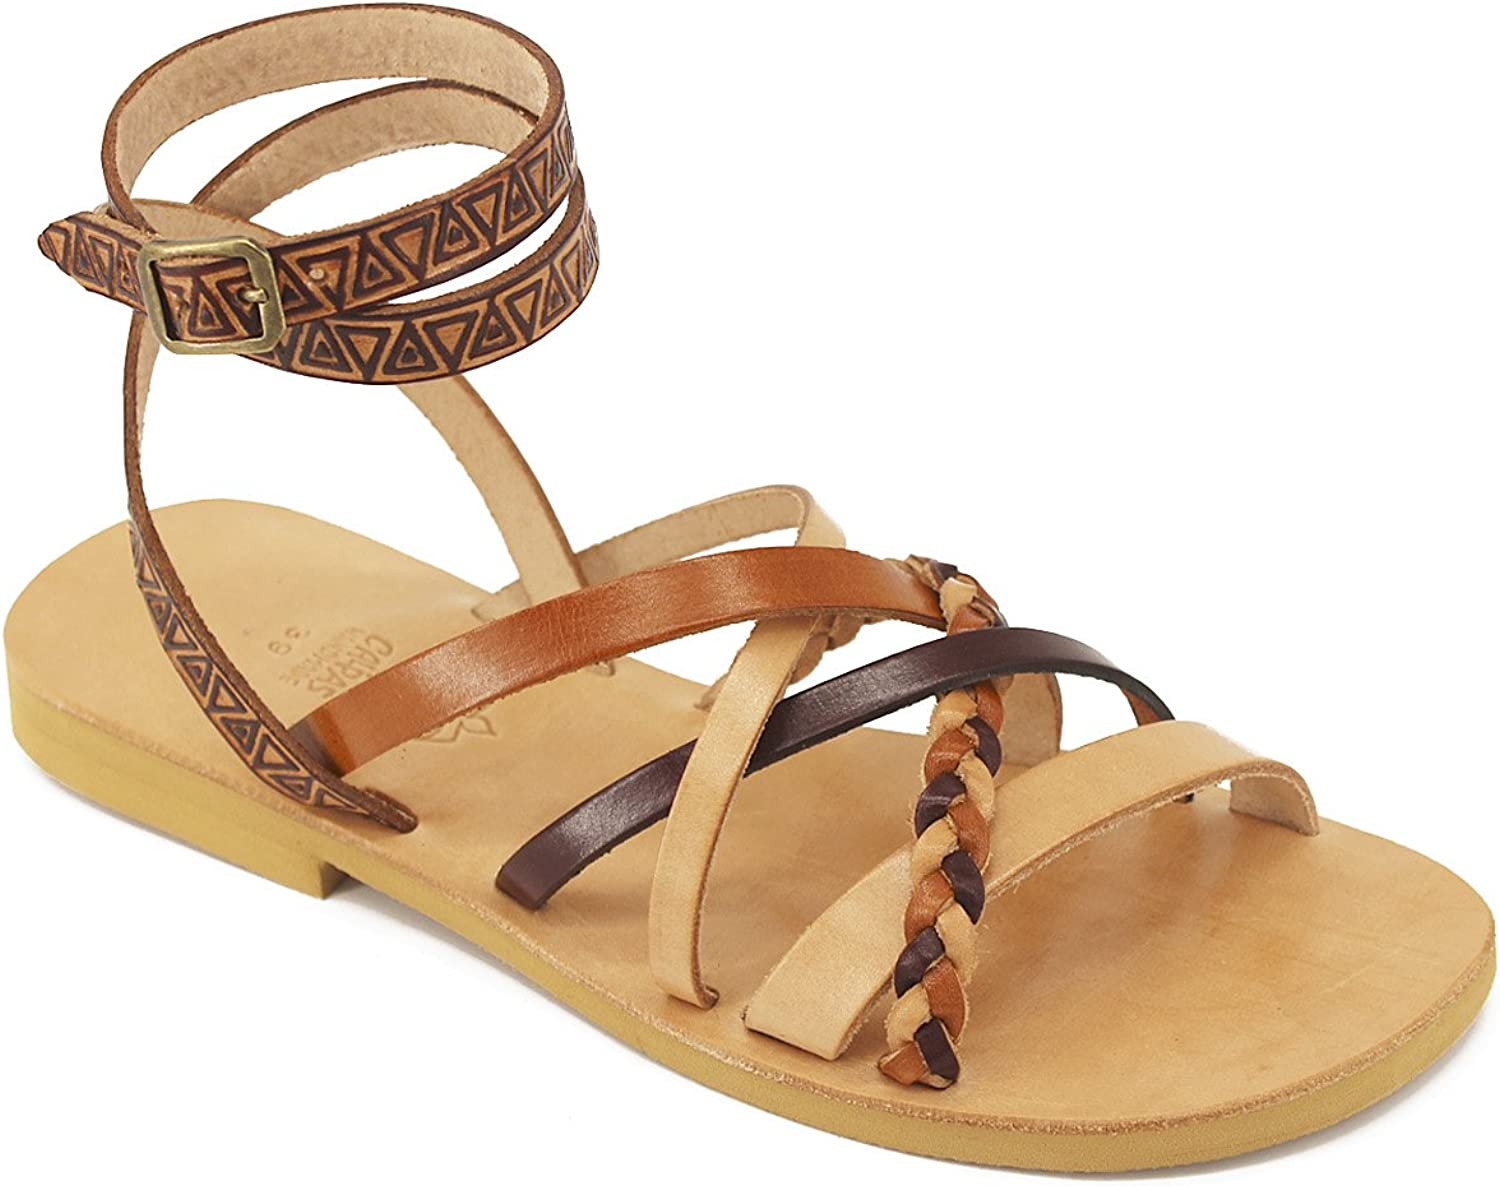 Gladiator Sandals Imprinted Leather Multi color Strappy Sandals Braided, Ankle Strap - Trinity